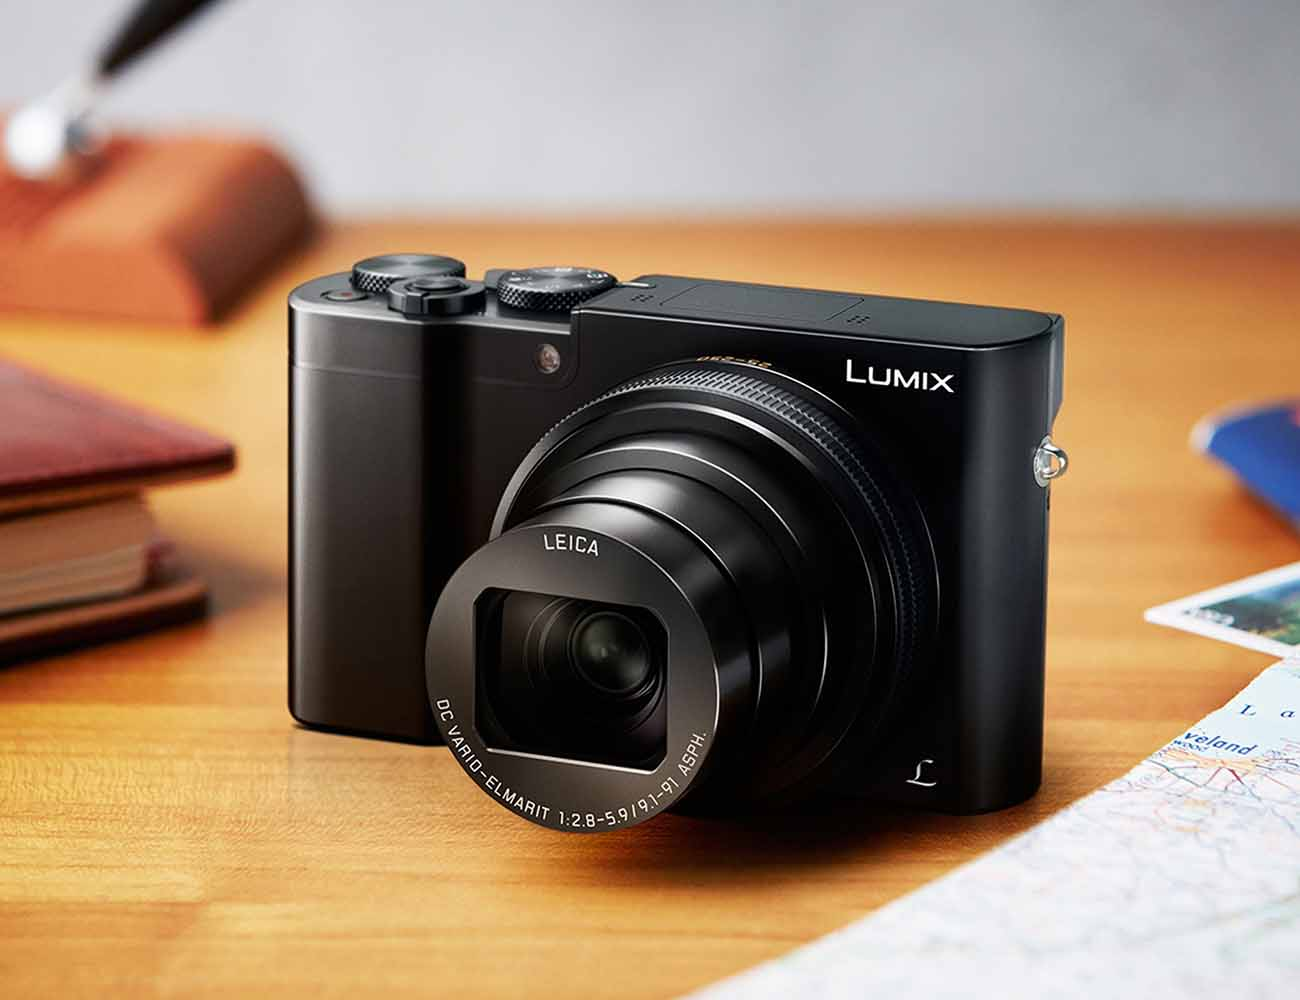 Lumix ZS100 – 4K Digital Camera With 20 MP Sensor from Panasonic